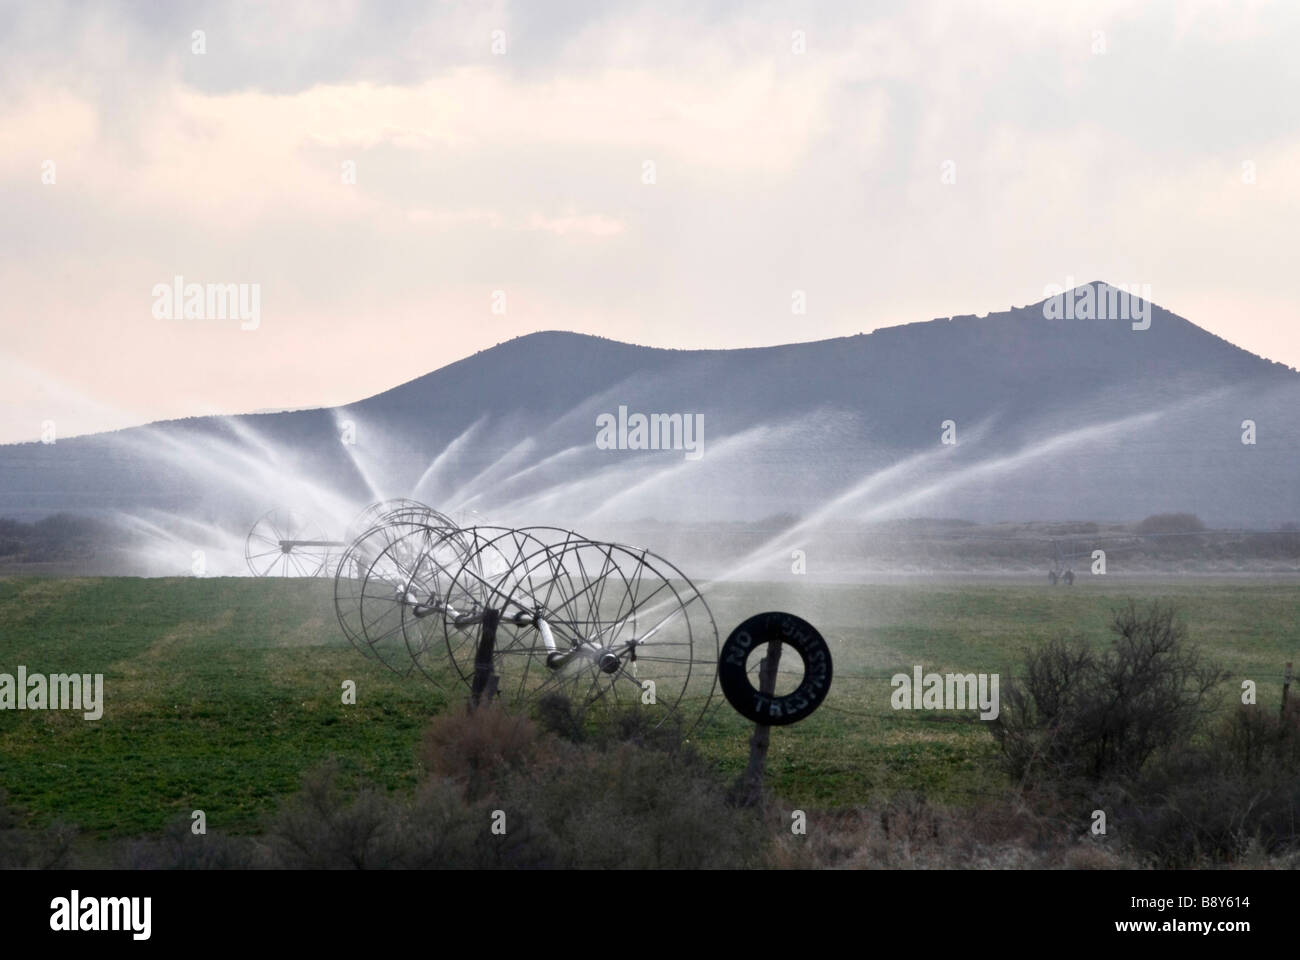 Agricultural sprinklers watering in a field, Nevada, USA - Stock Image